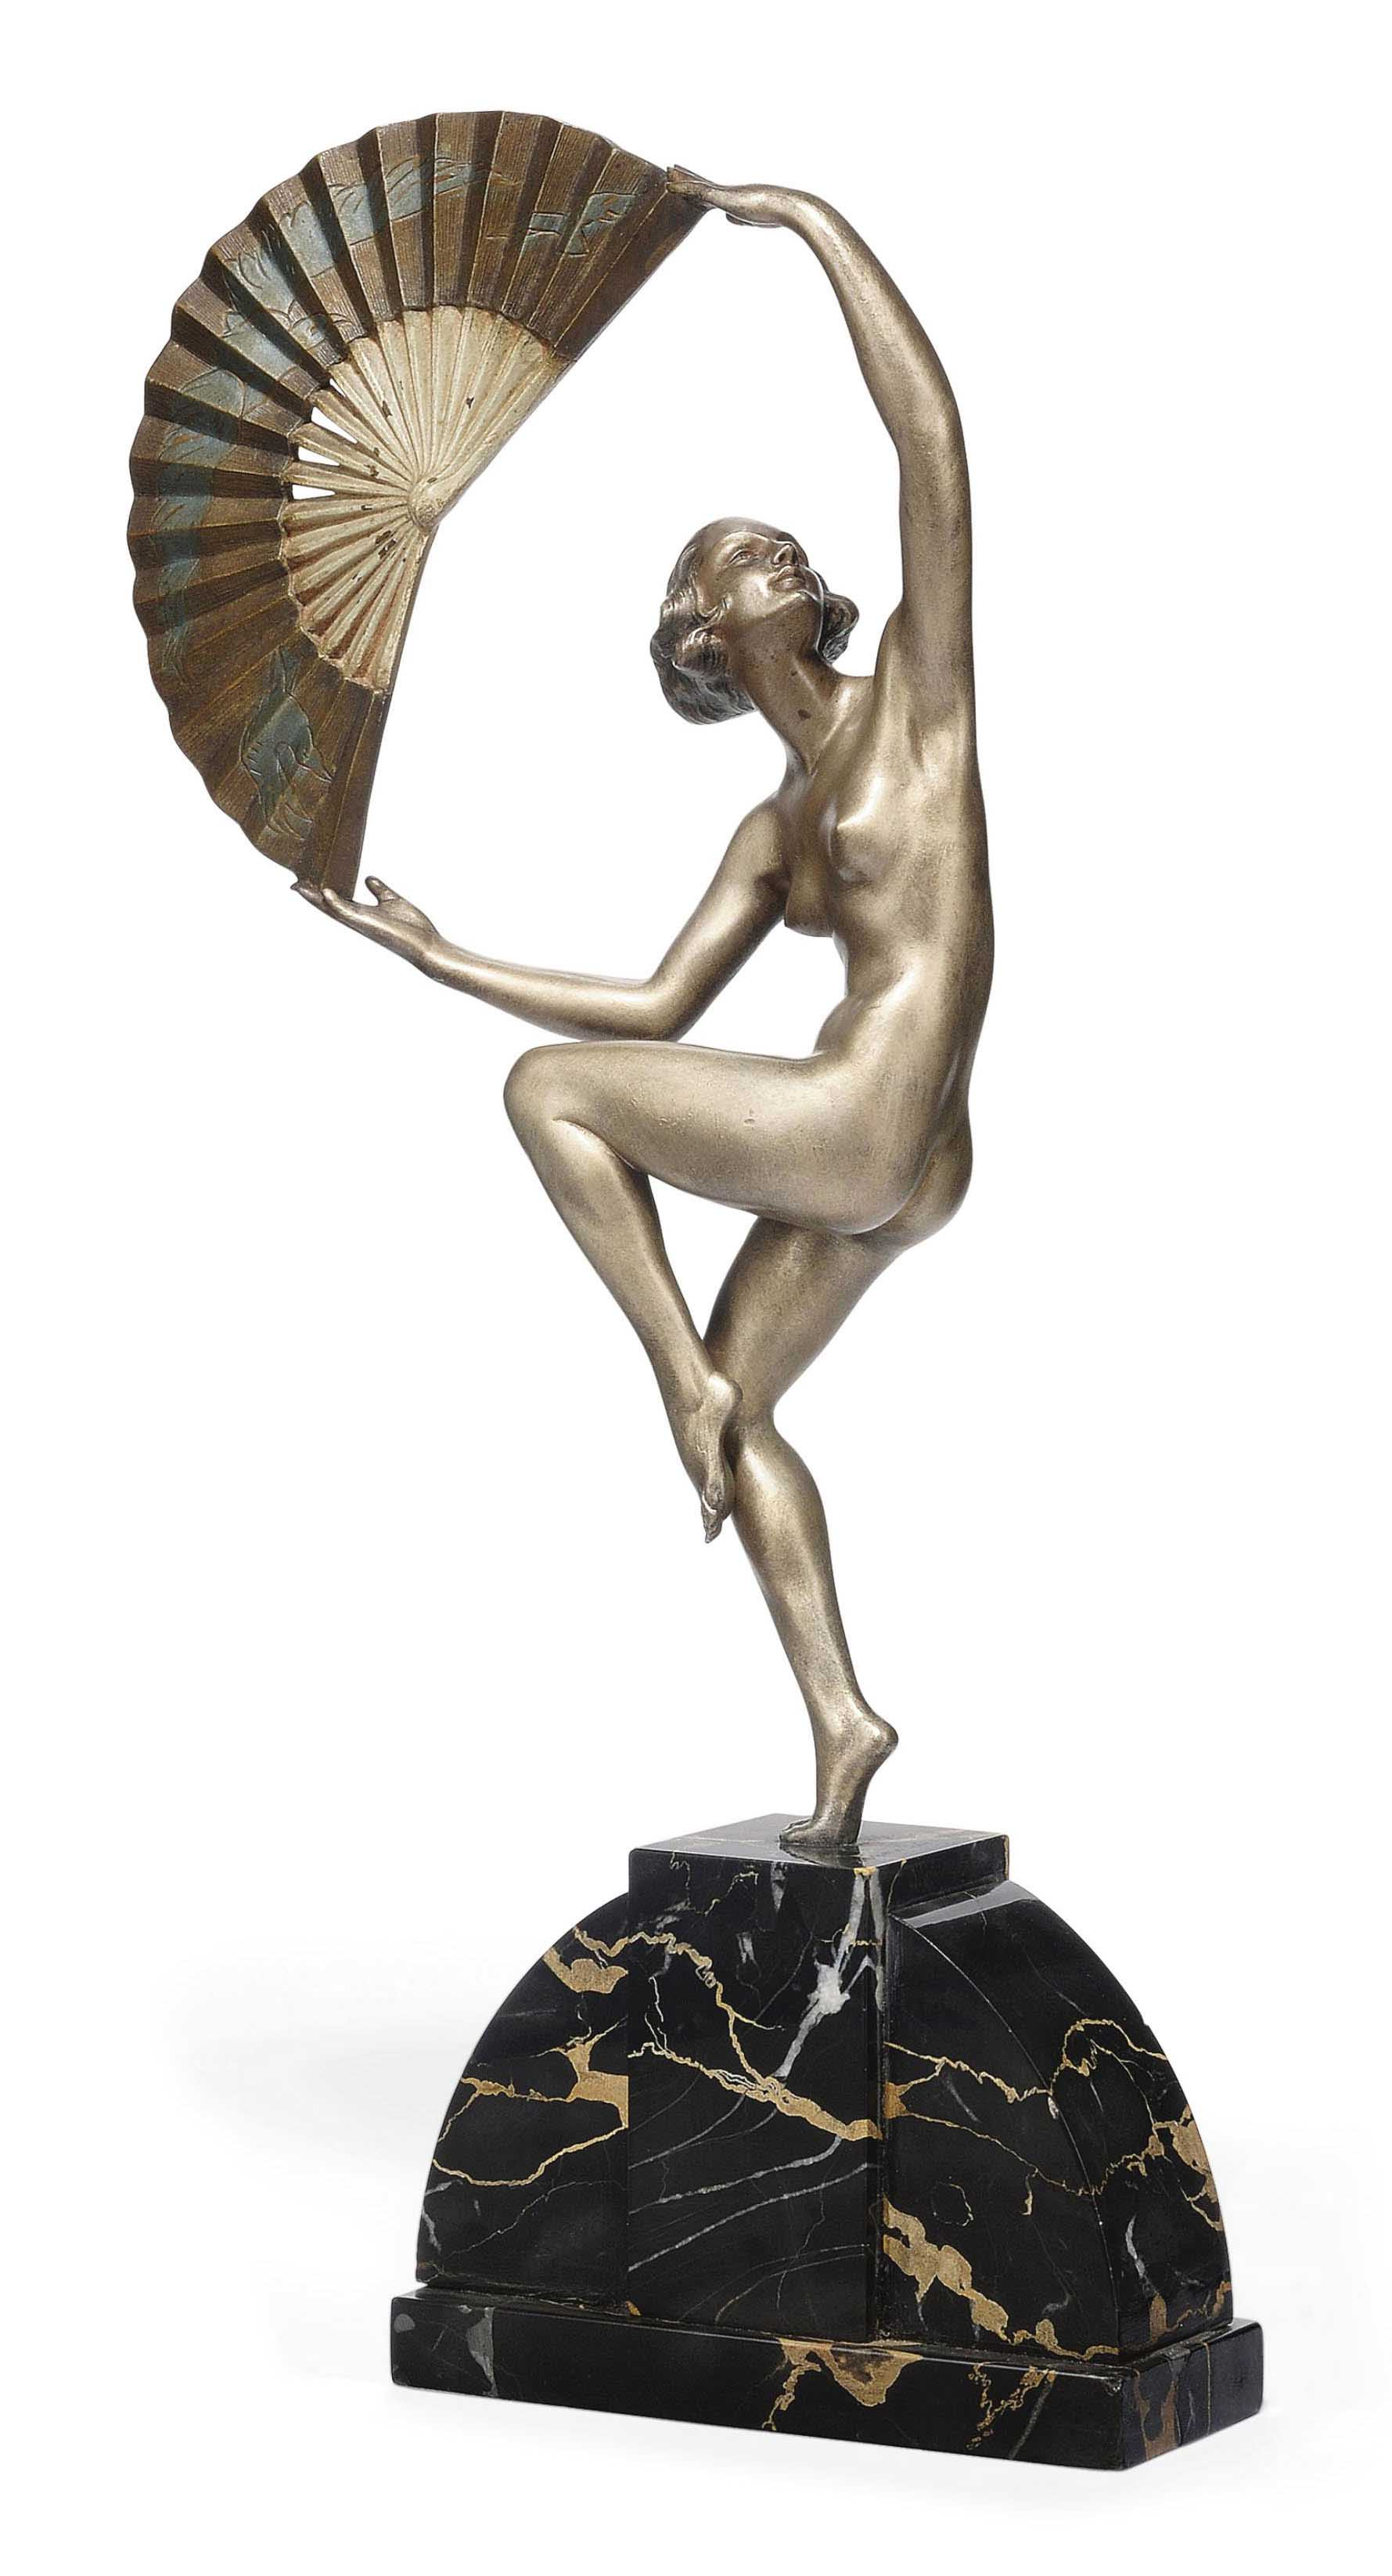 'FAN DANCER' A COLD-PAINTED BRONZE FIGURE BY MARCEL-ANDRE BOURAINE